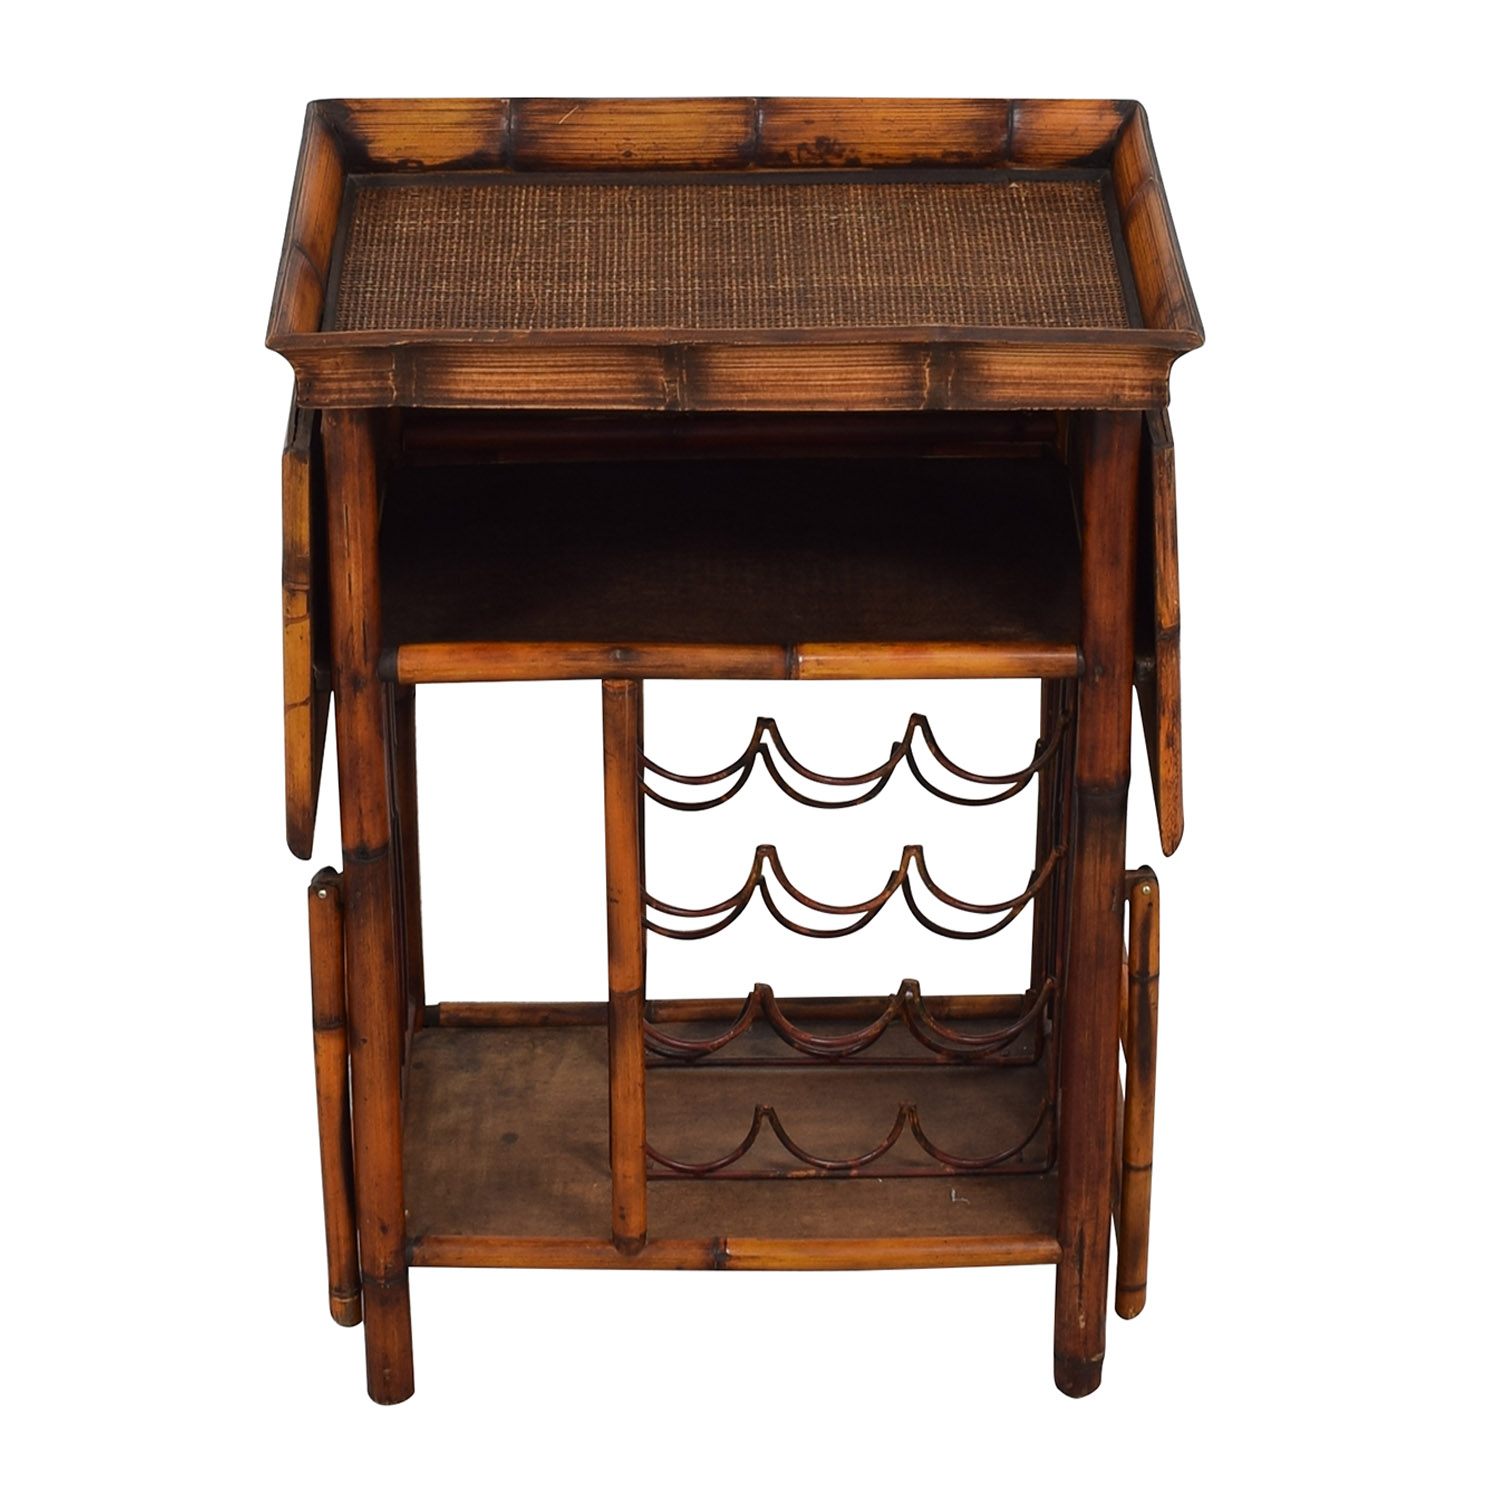 buy Interlude Home Wine Storage Serving Table Interlude Home